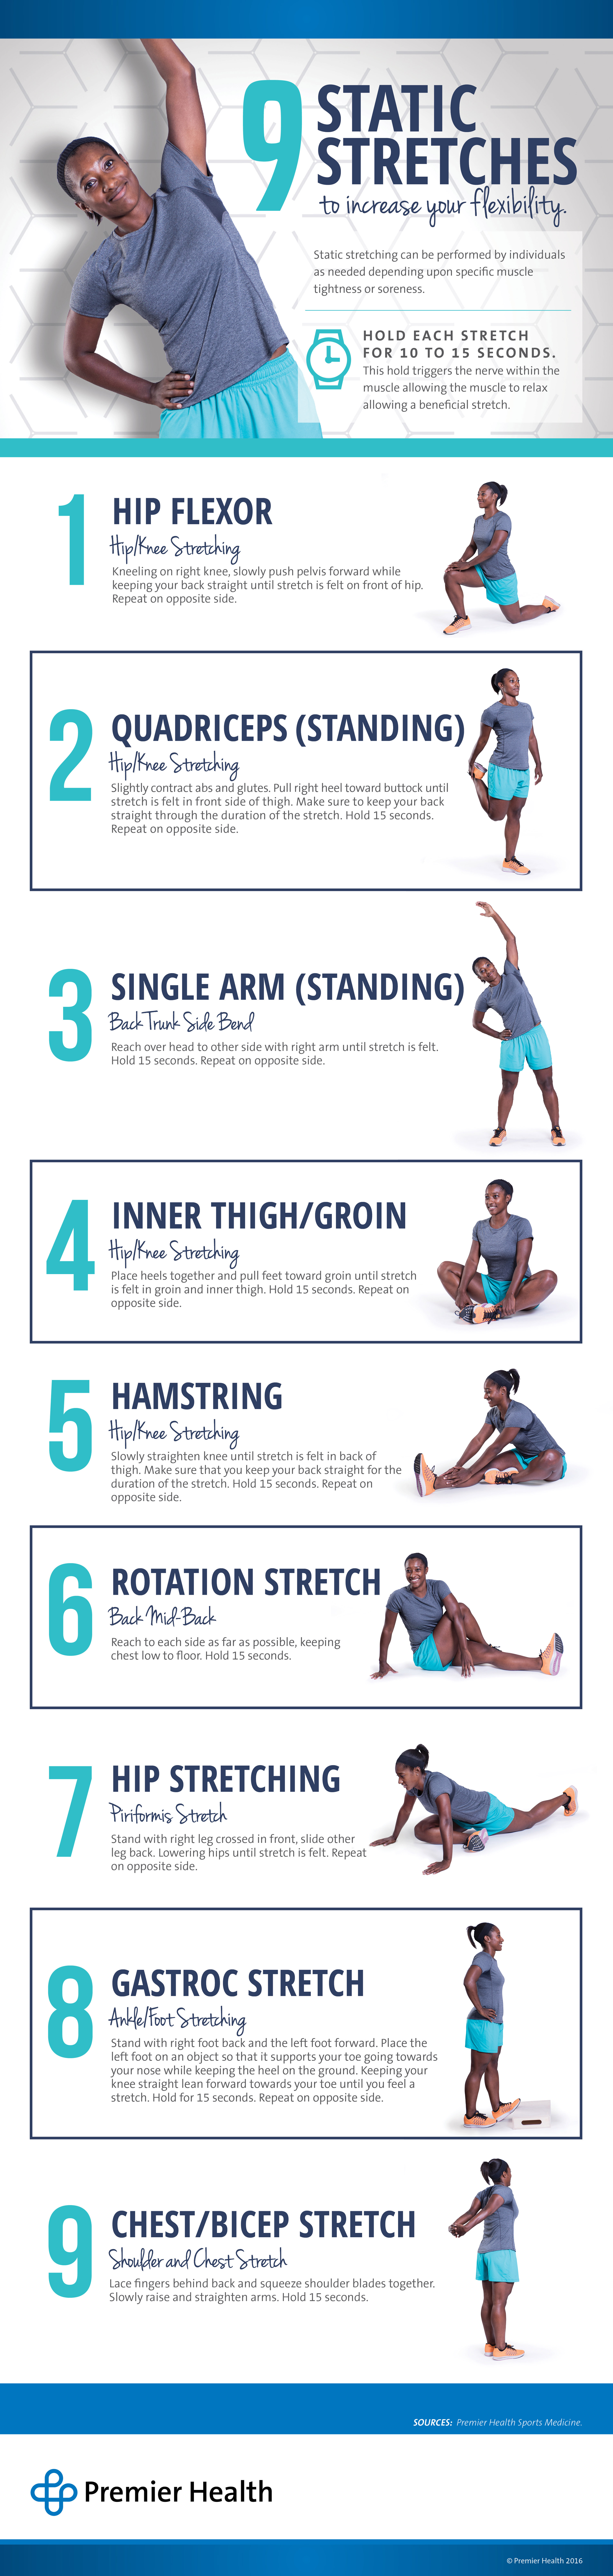 Static Stretches Infographic